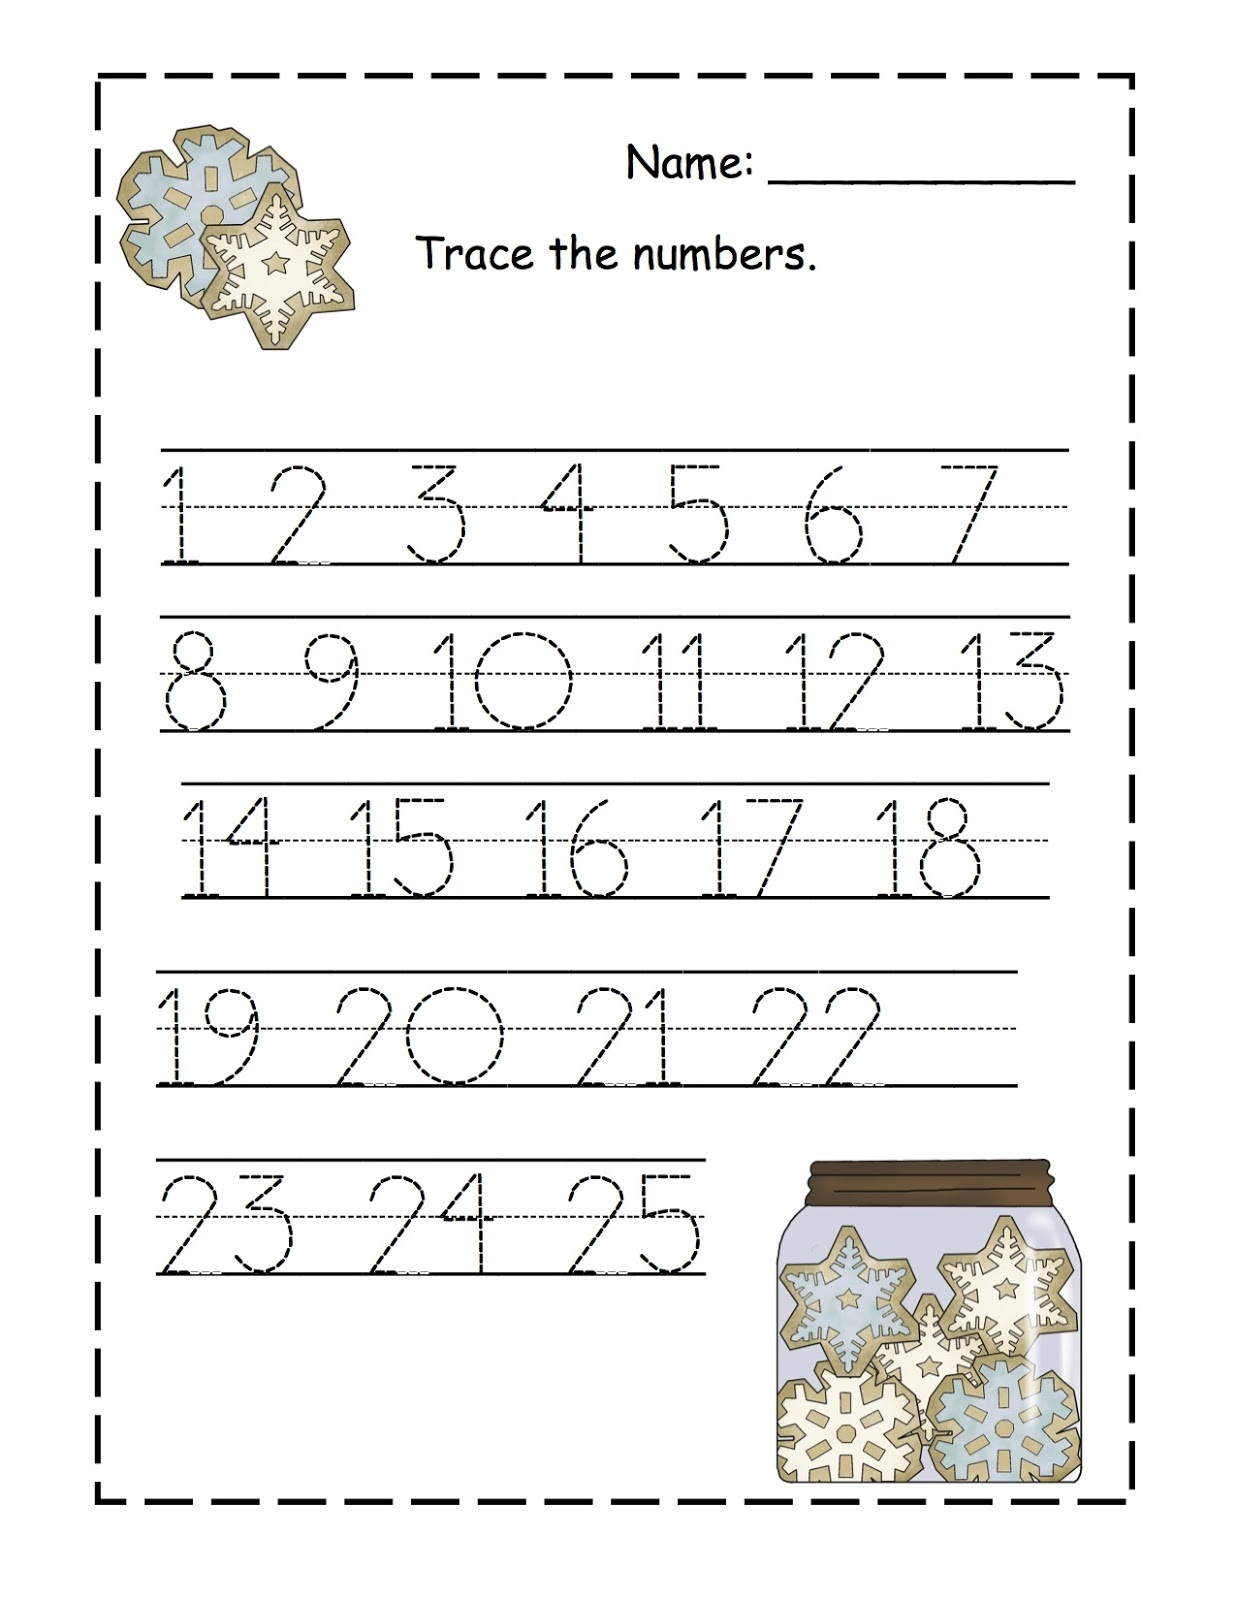 trace-the-numbers-100